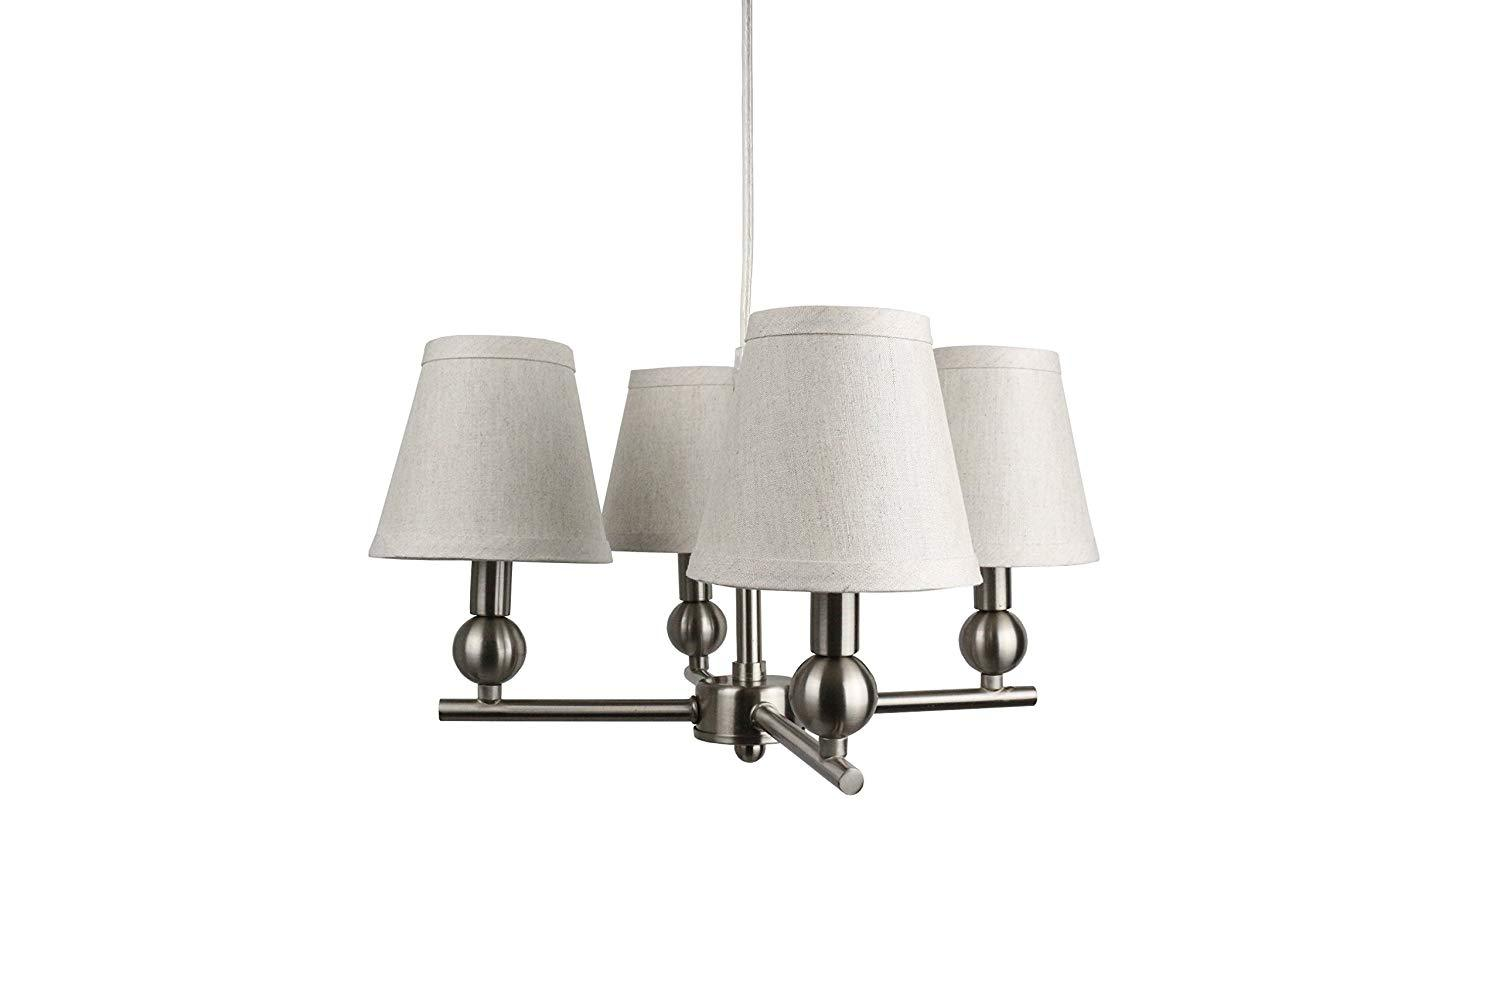 Urbanest Portable Zio 4-Light Chandelier with Oatmeal Linen Shades